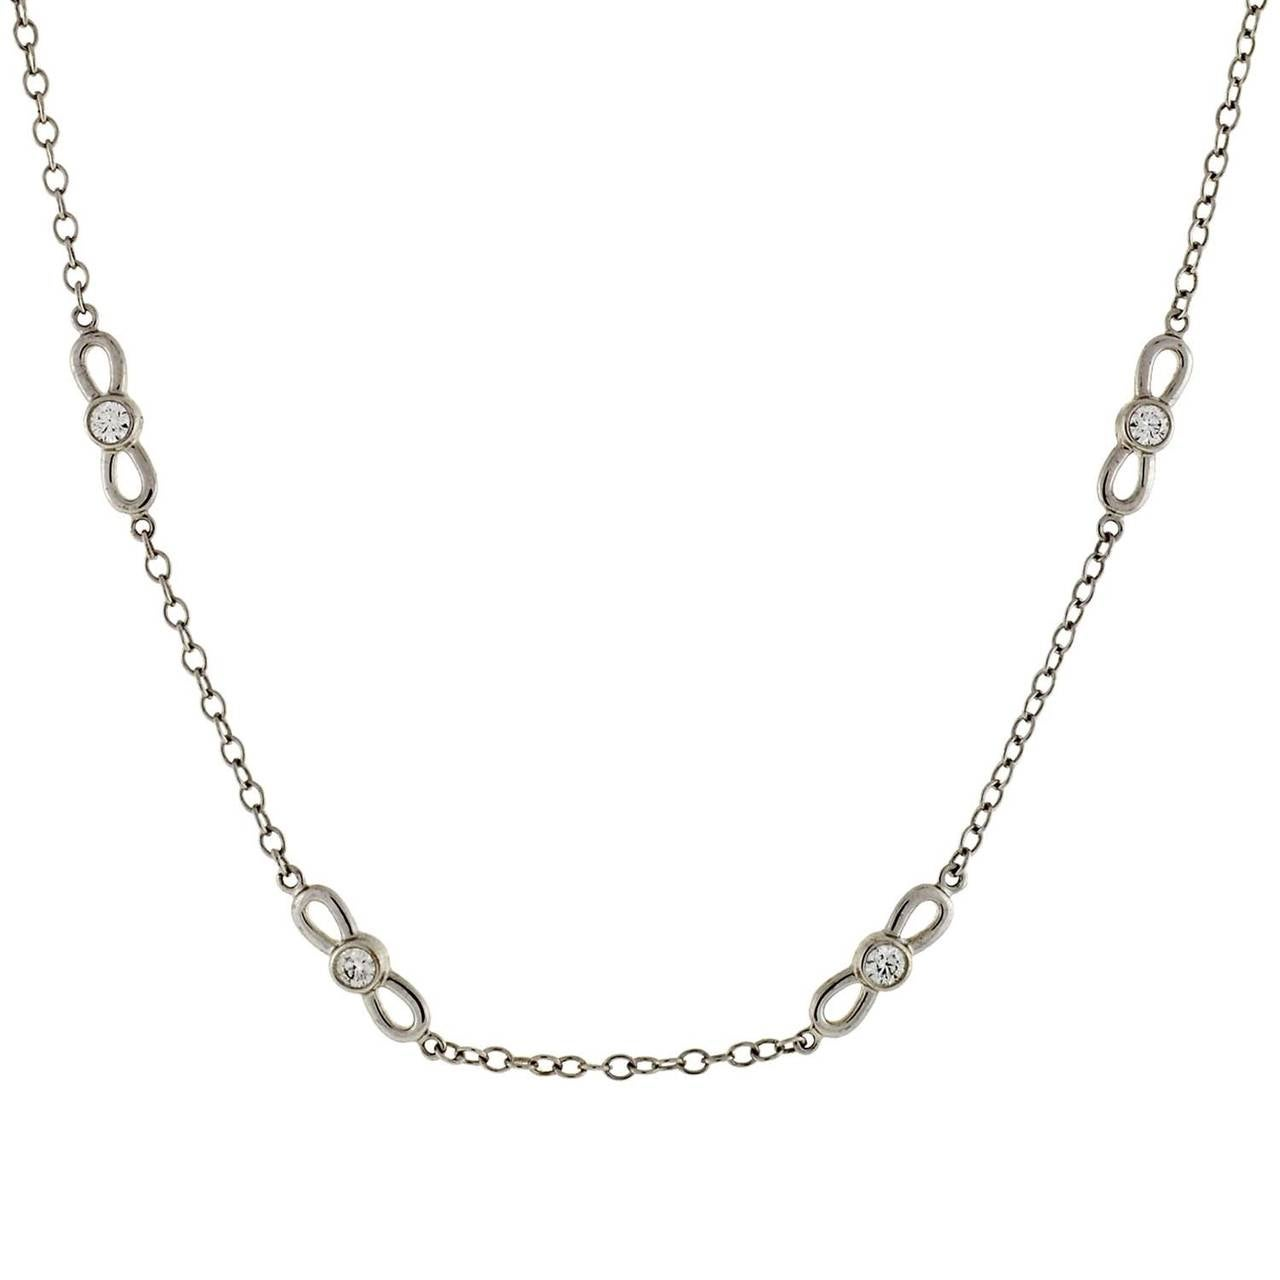 Jewelry Necklaces Link Necklaces Tiffany Co Diamond Gold Link Chain Necklace Id J 772102 Tiffany Chain Necklace